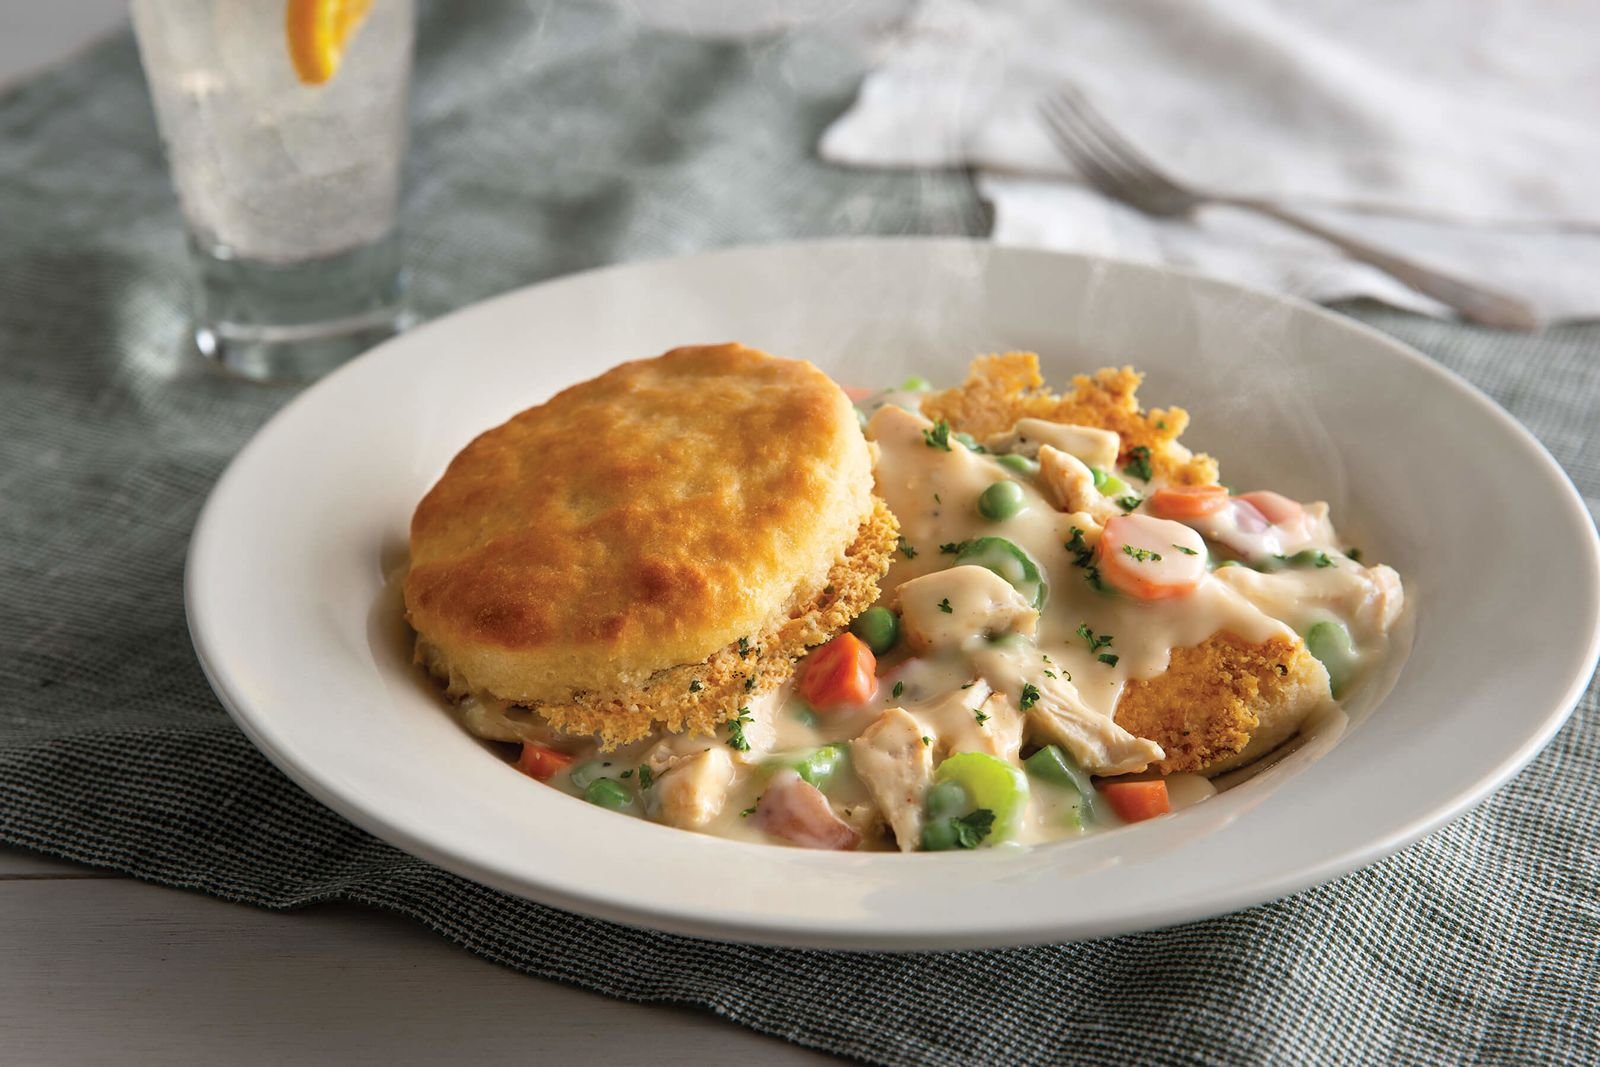 Cracker Barrel Old Country Store Puts Fresh Twist on Tradition with Expanded Fall Menu